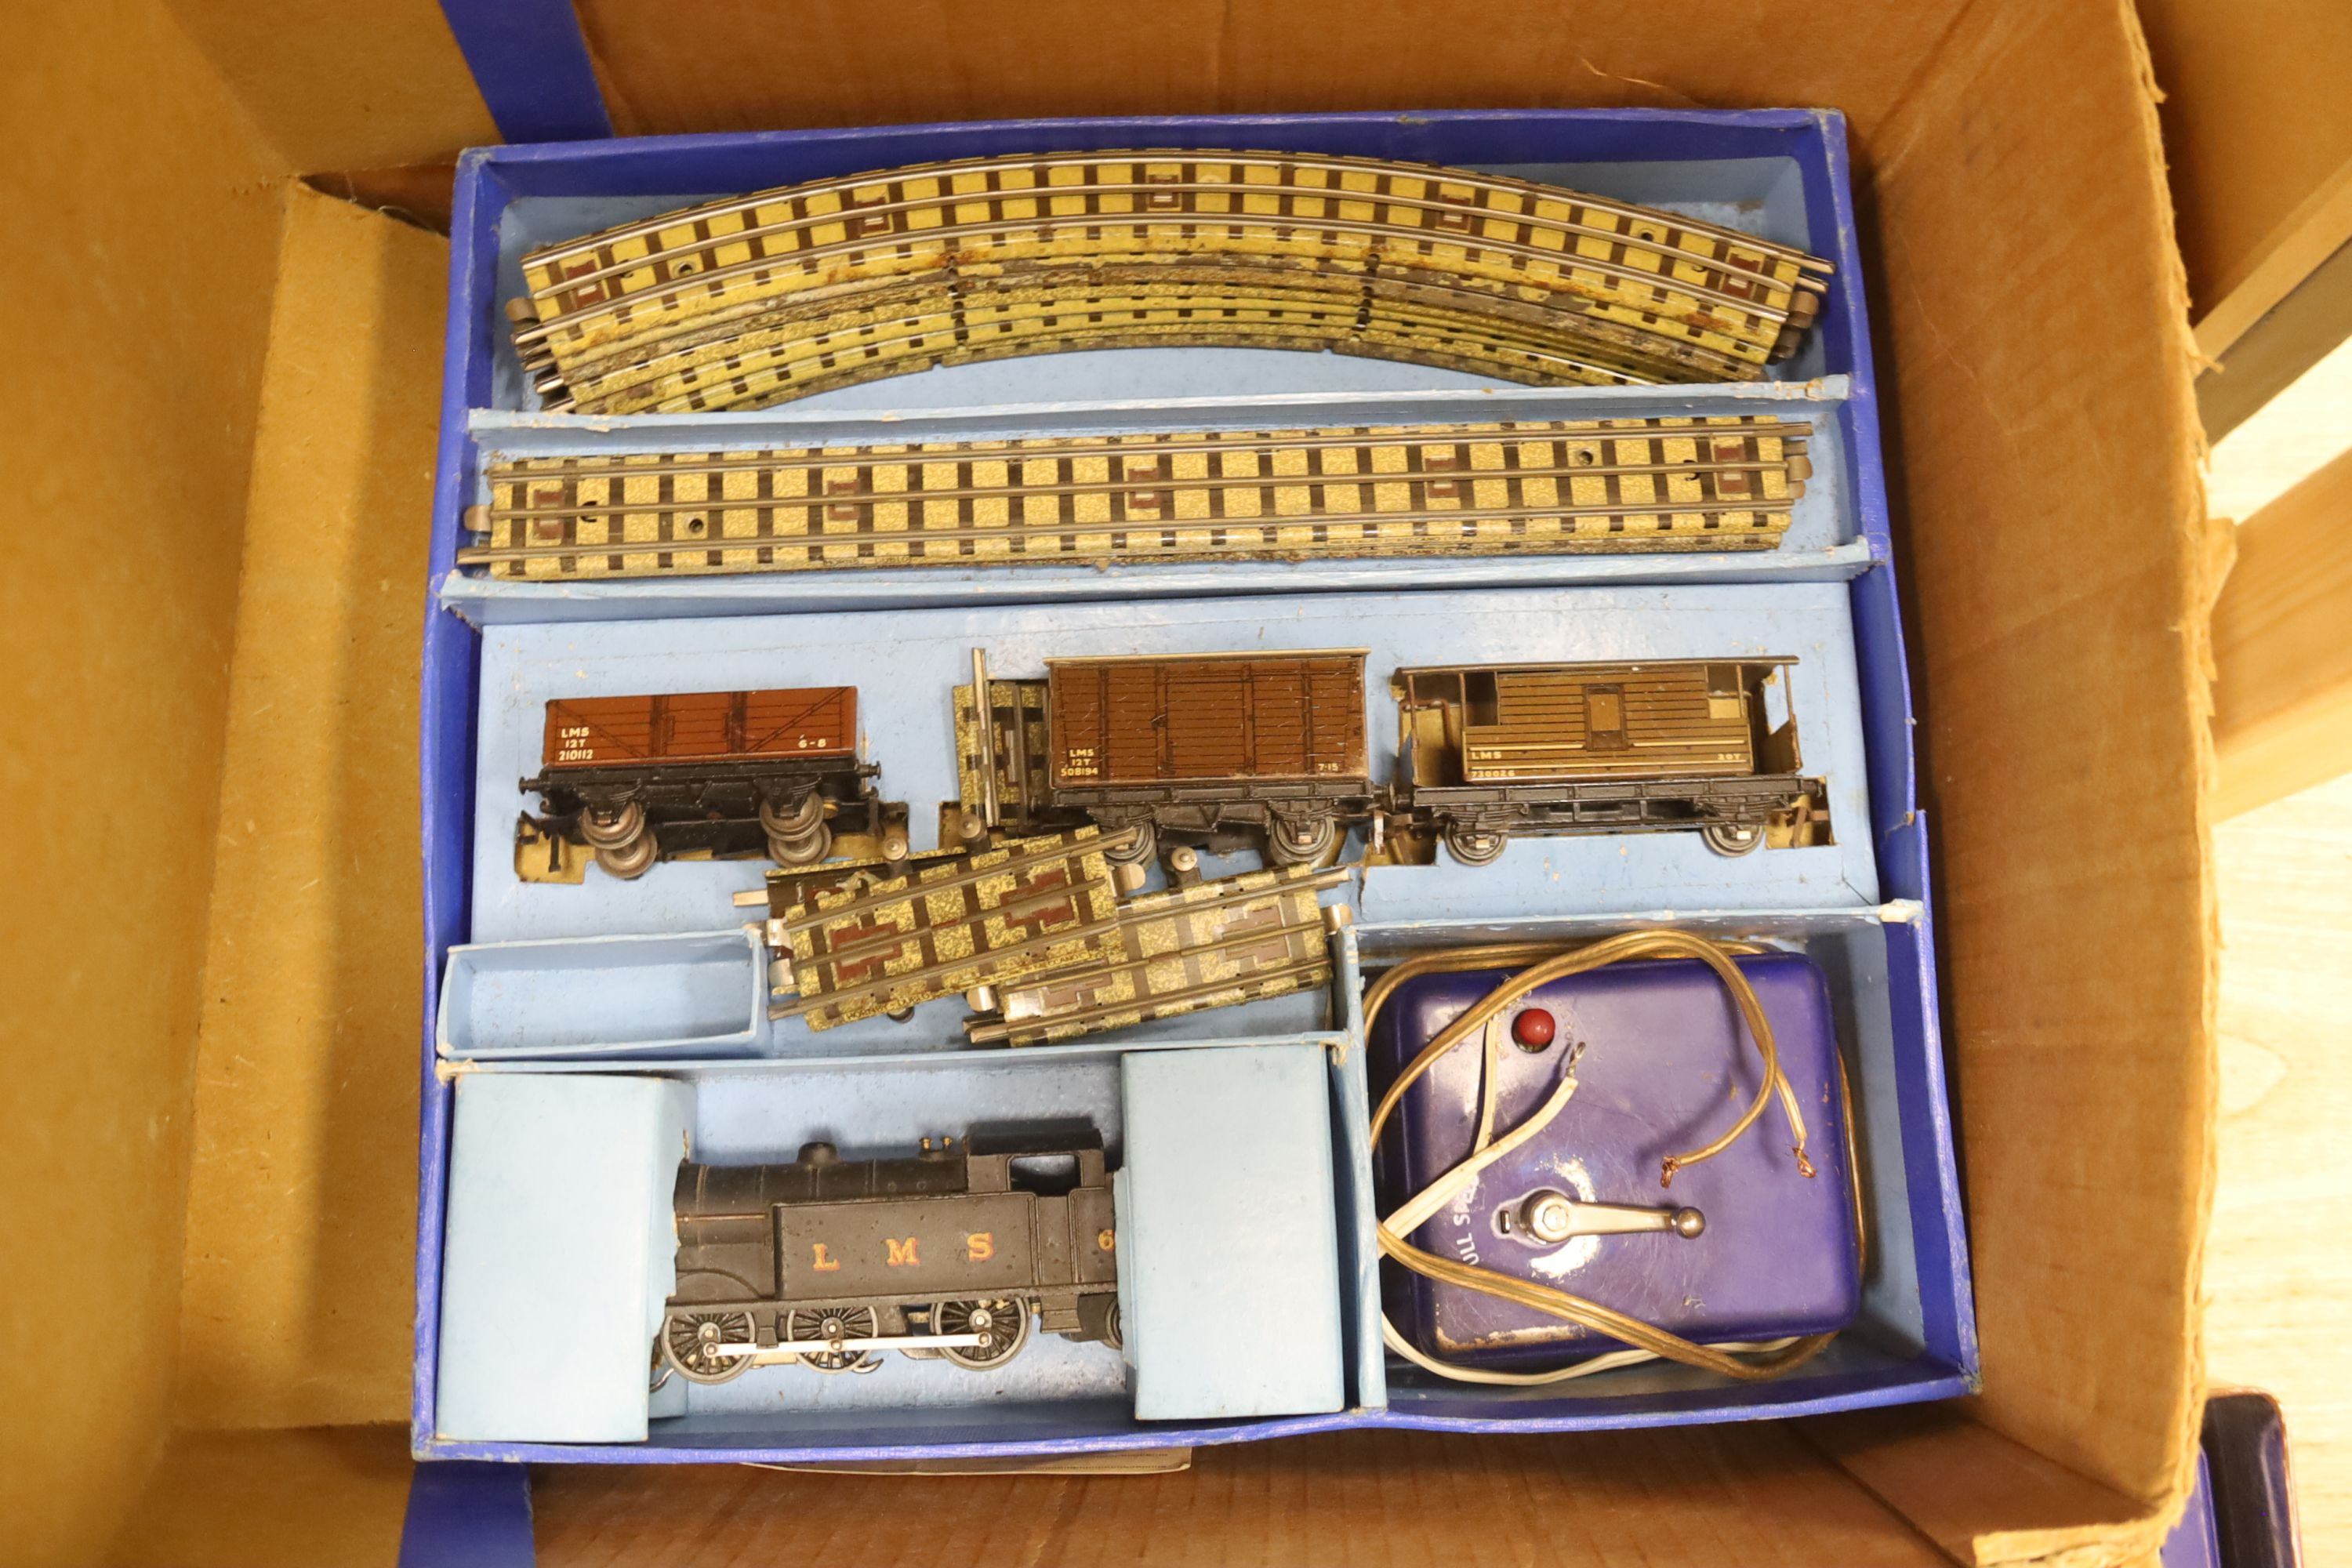 A Hornby Dublo EDG7 tank goods train set, an EDL 18 2-6-4 tank locomotive boxed, one other - Image 3 of 5